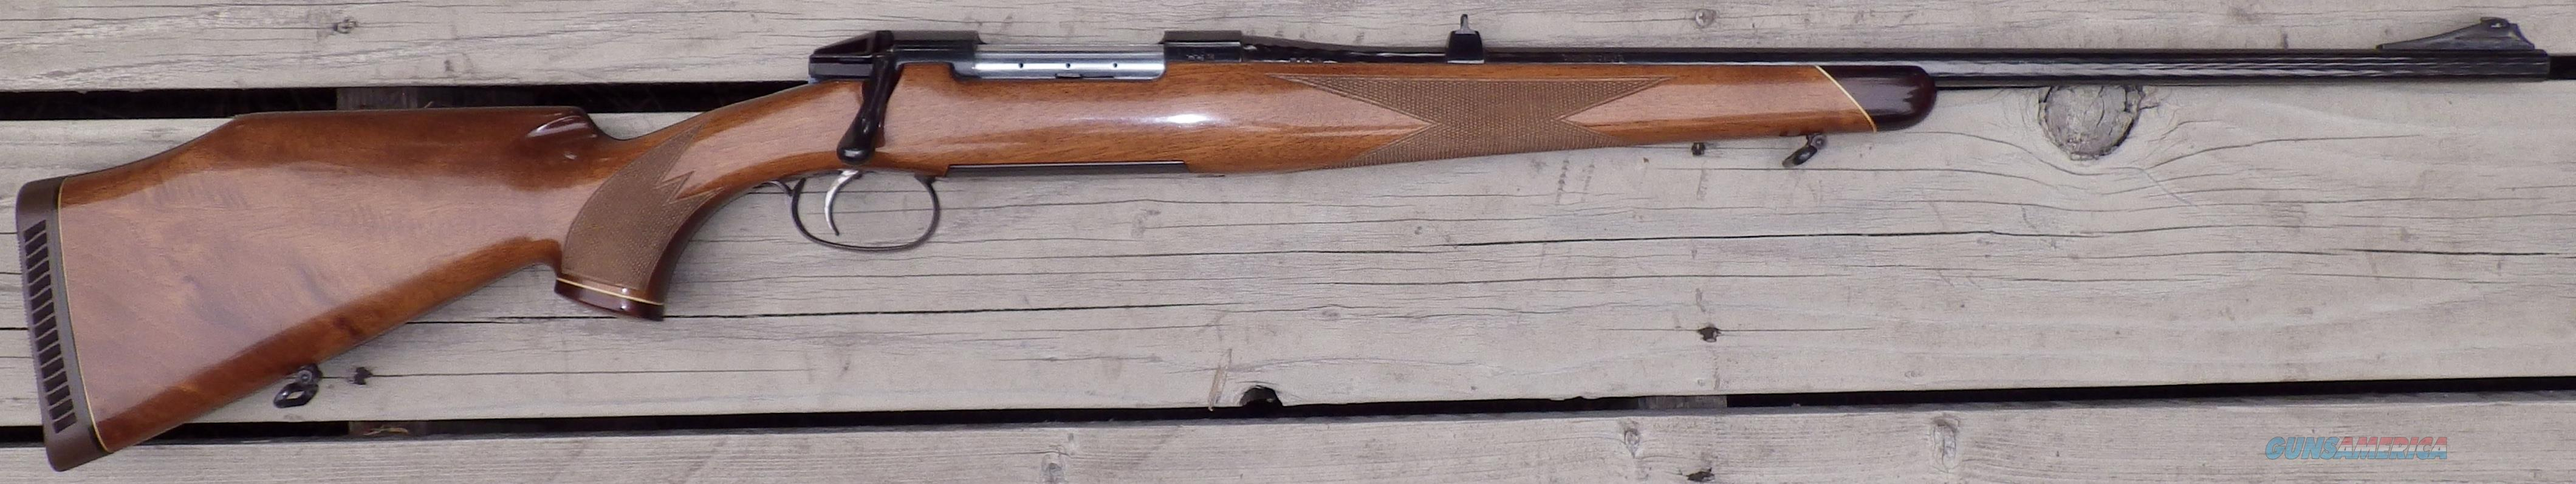 Steyr Model 72 ( Pedersen Mannlicher ) .270 Winchester, 95% condition  Guns > Rifles > Steyr Rifles